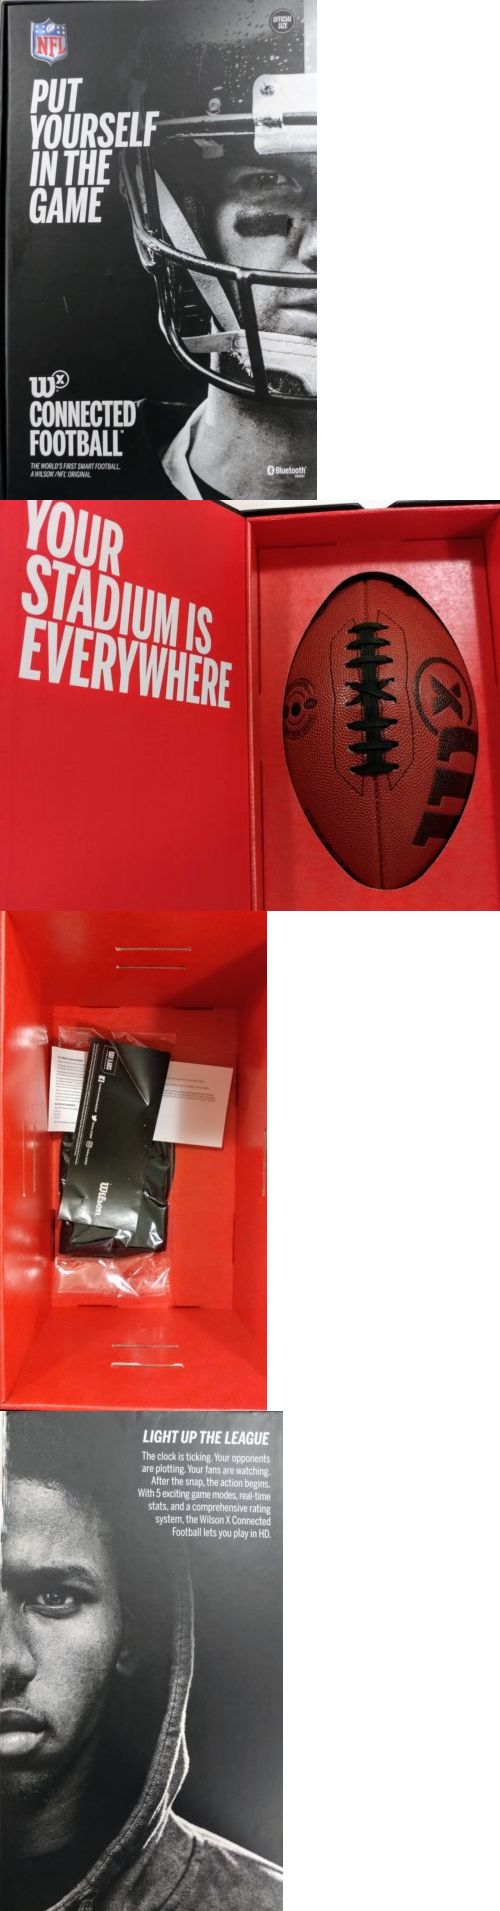 Footballs 21220: Wilson X Nfl Official Size Football - Nfl -> BUY IT NOW ONLY: $65 on eBay!